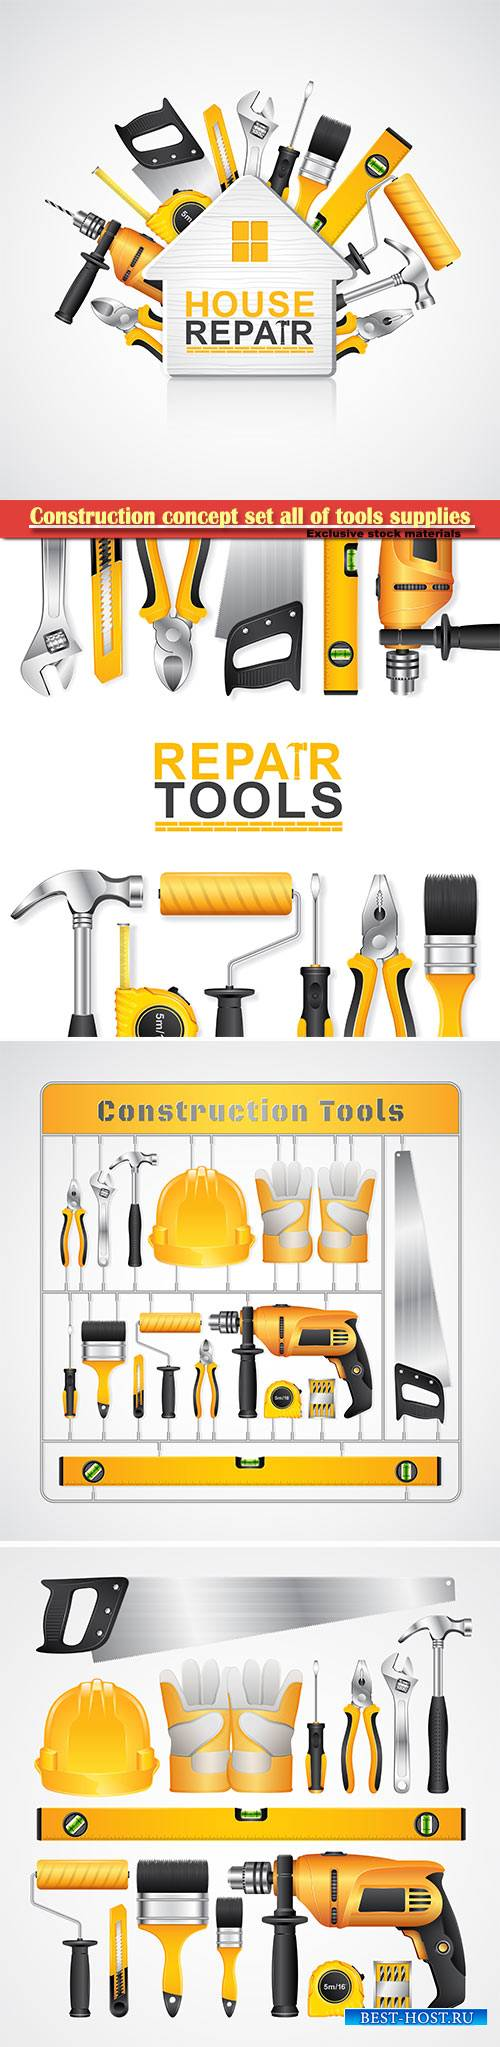 Construction concept set all of tools supplies for house repair builder vec ...